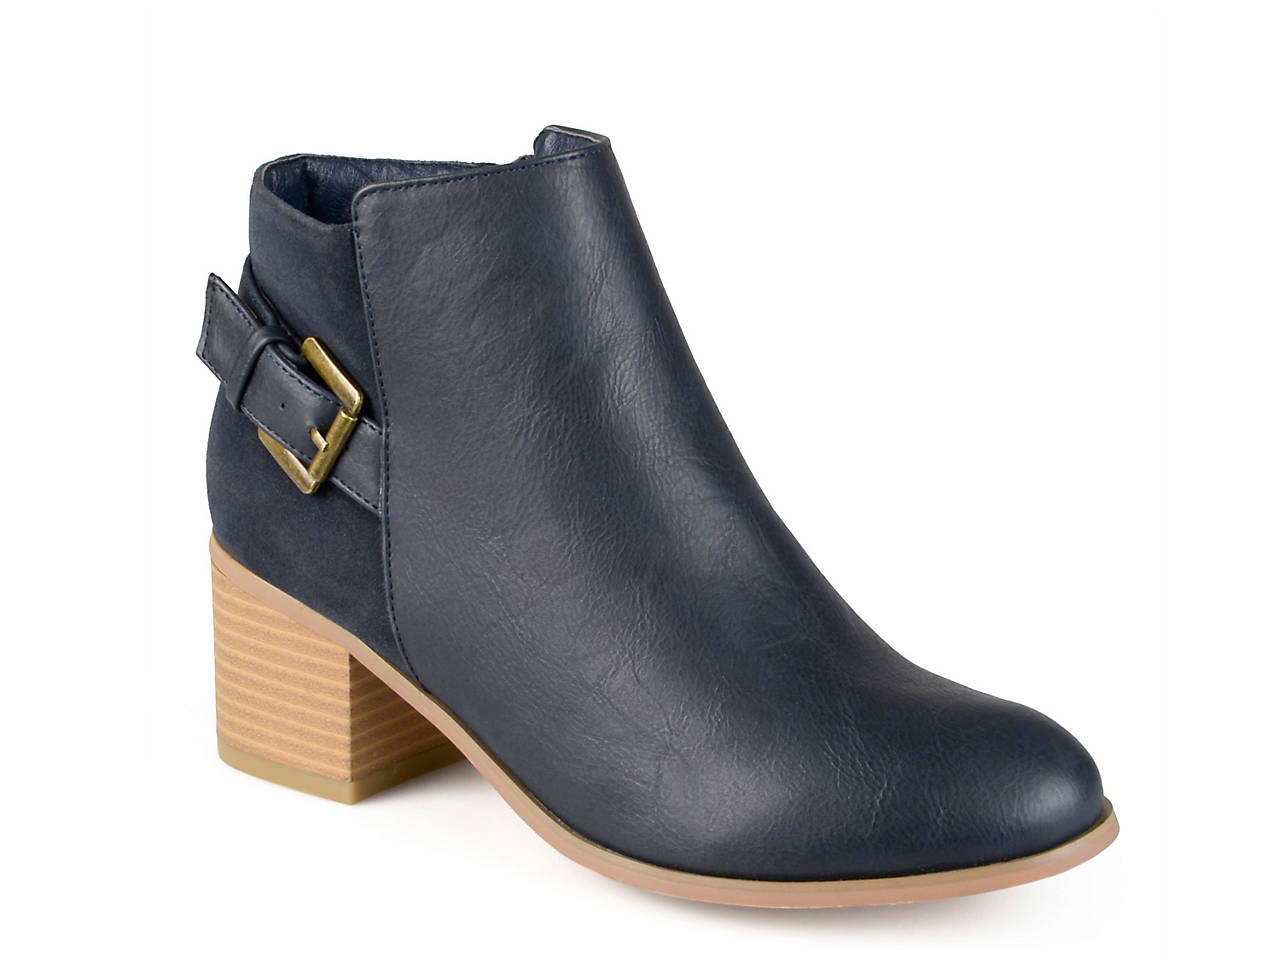 Journee Collection Teegan ... Women's Ankle Boots 8pCQ6